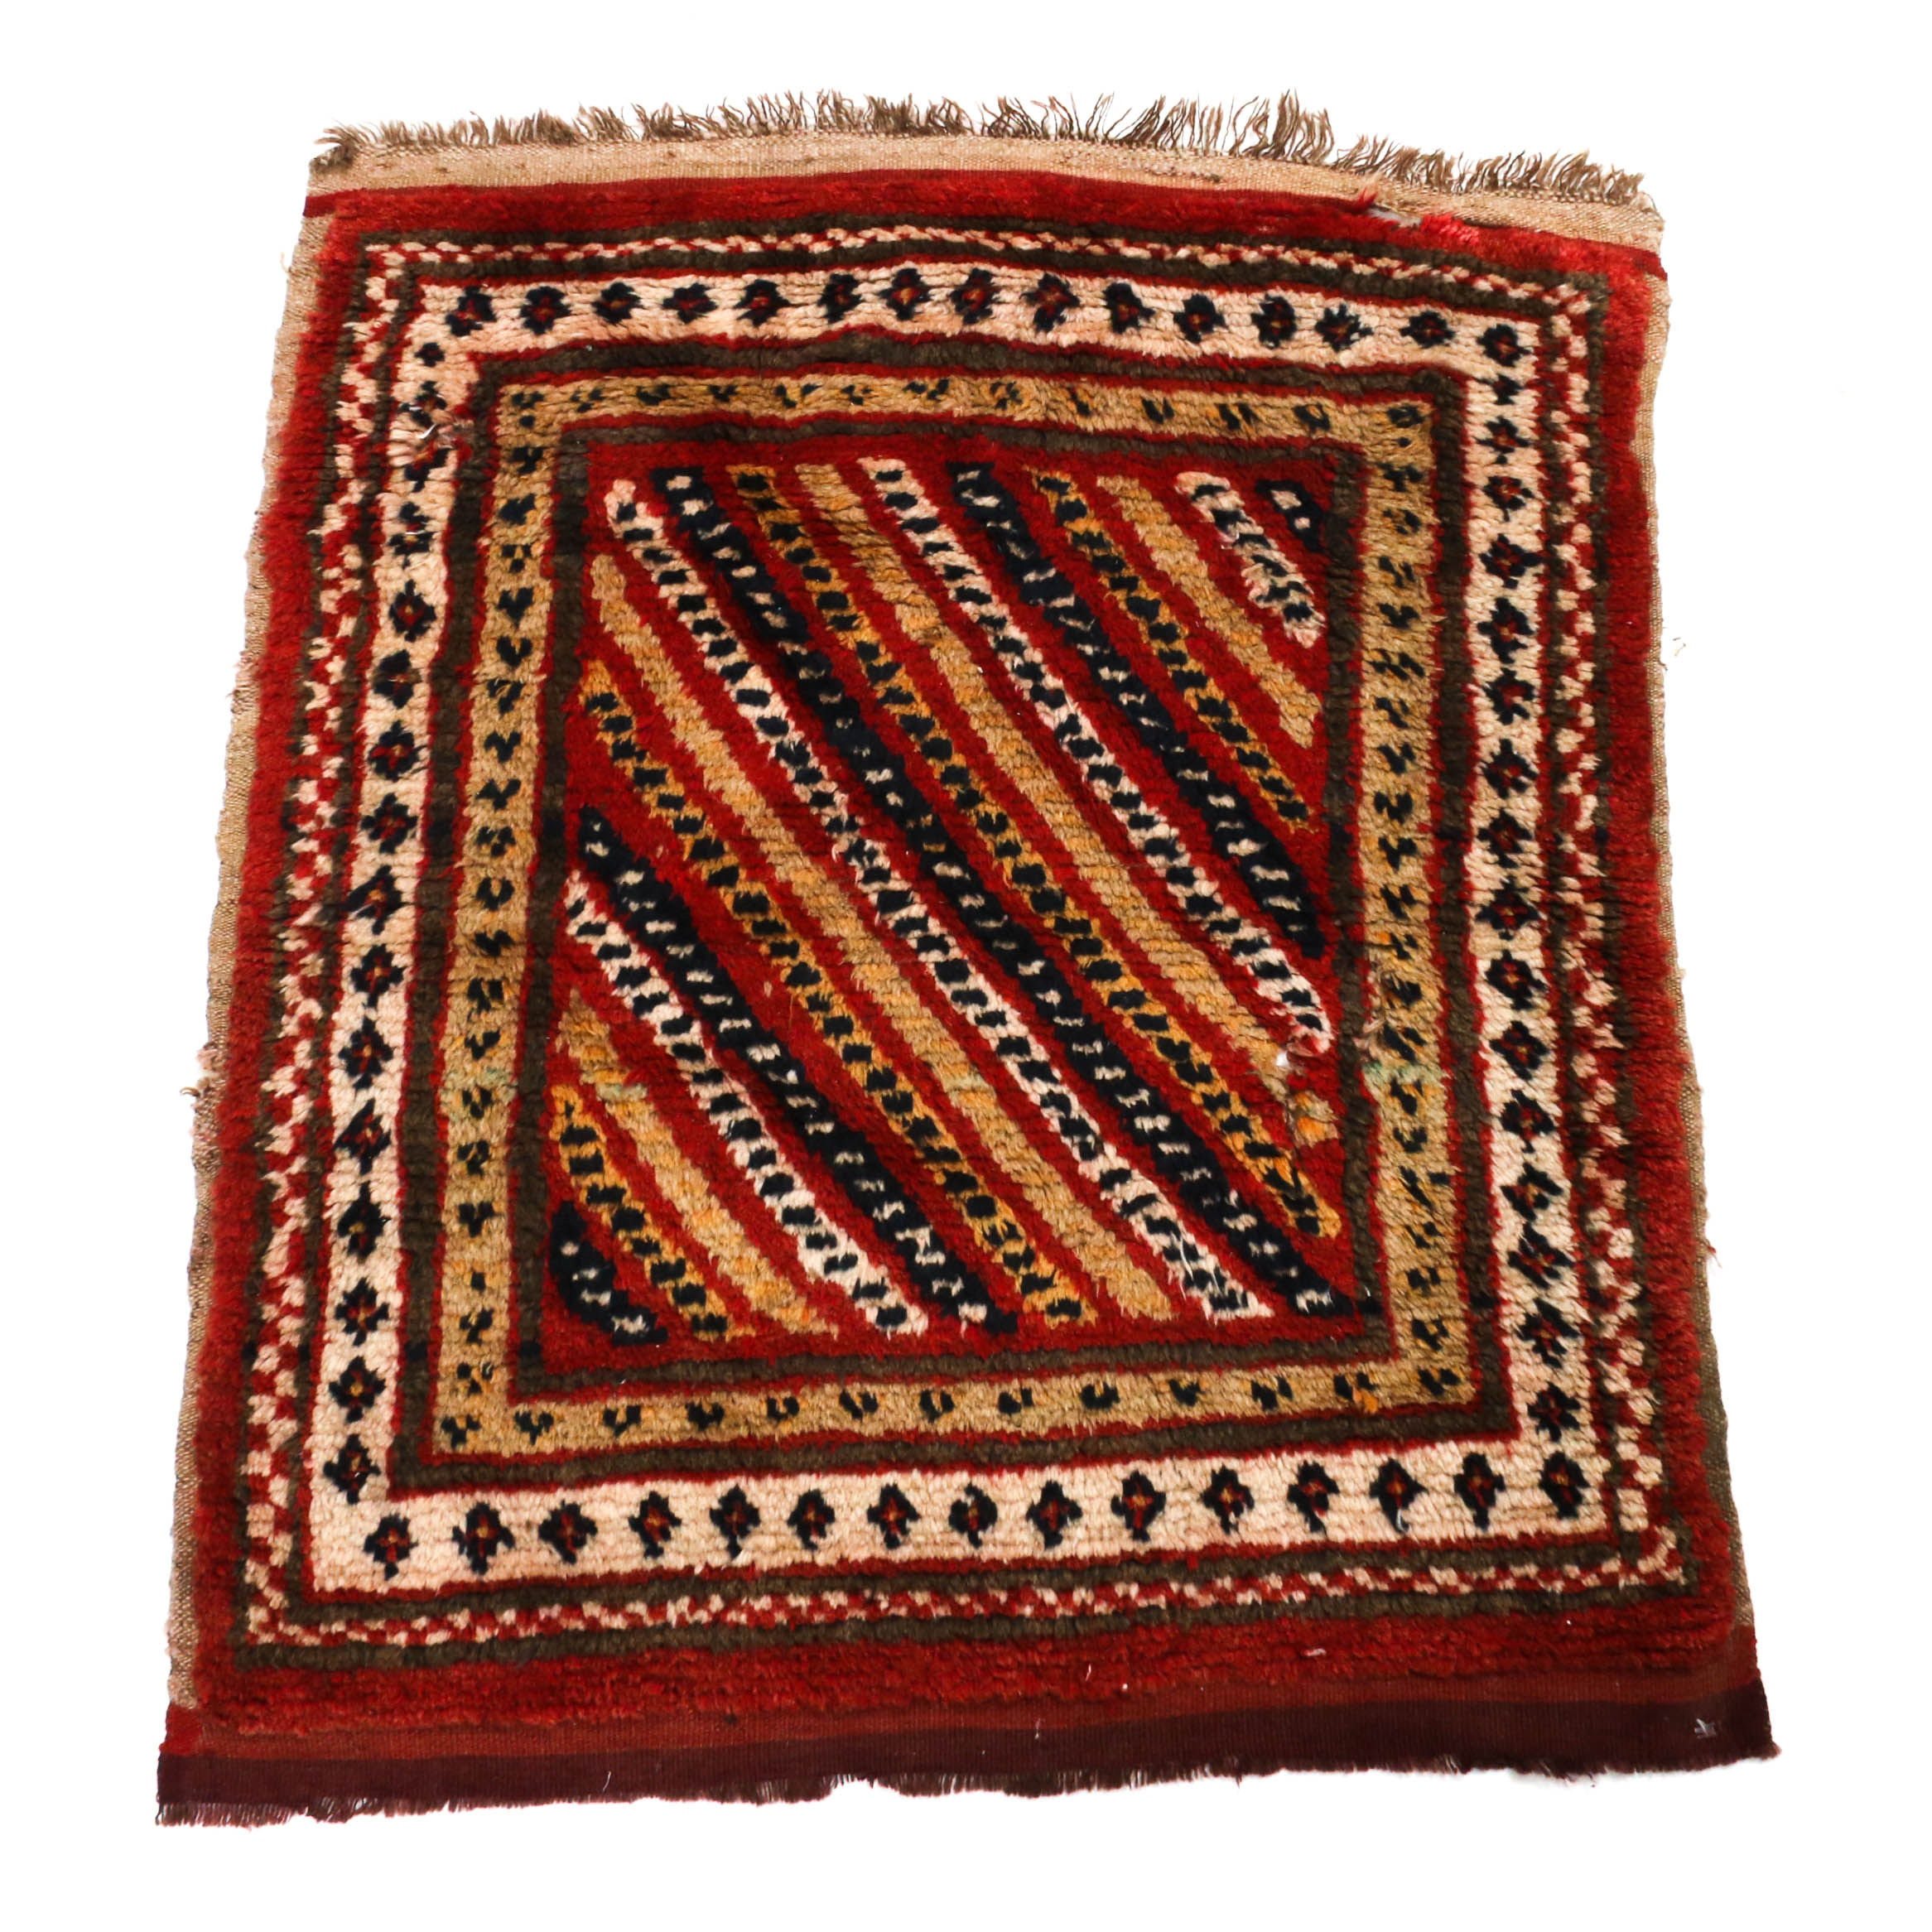 2'6 x 3'1 Hand-Knotted Turkish Oushak Wool Rug, Circa 1900